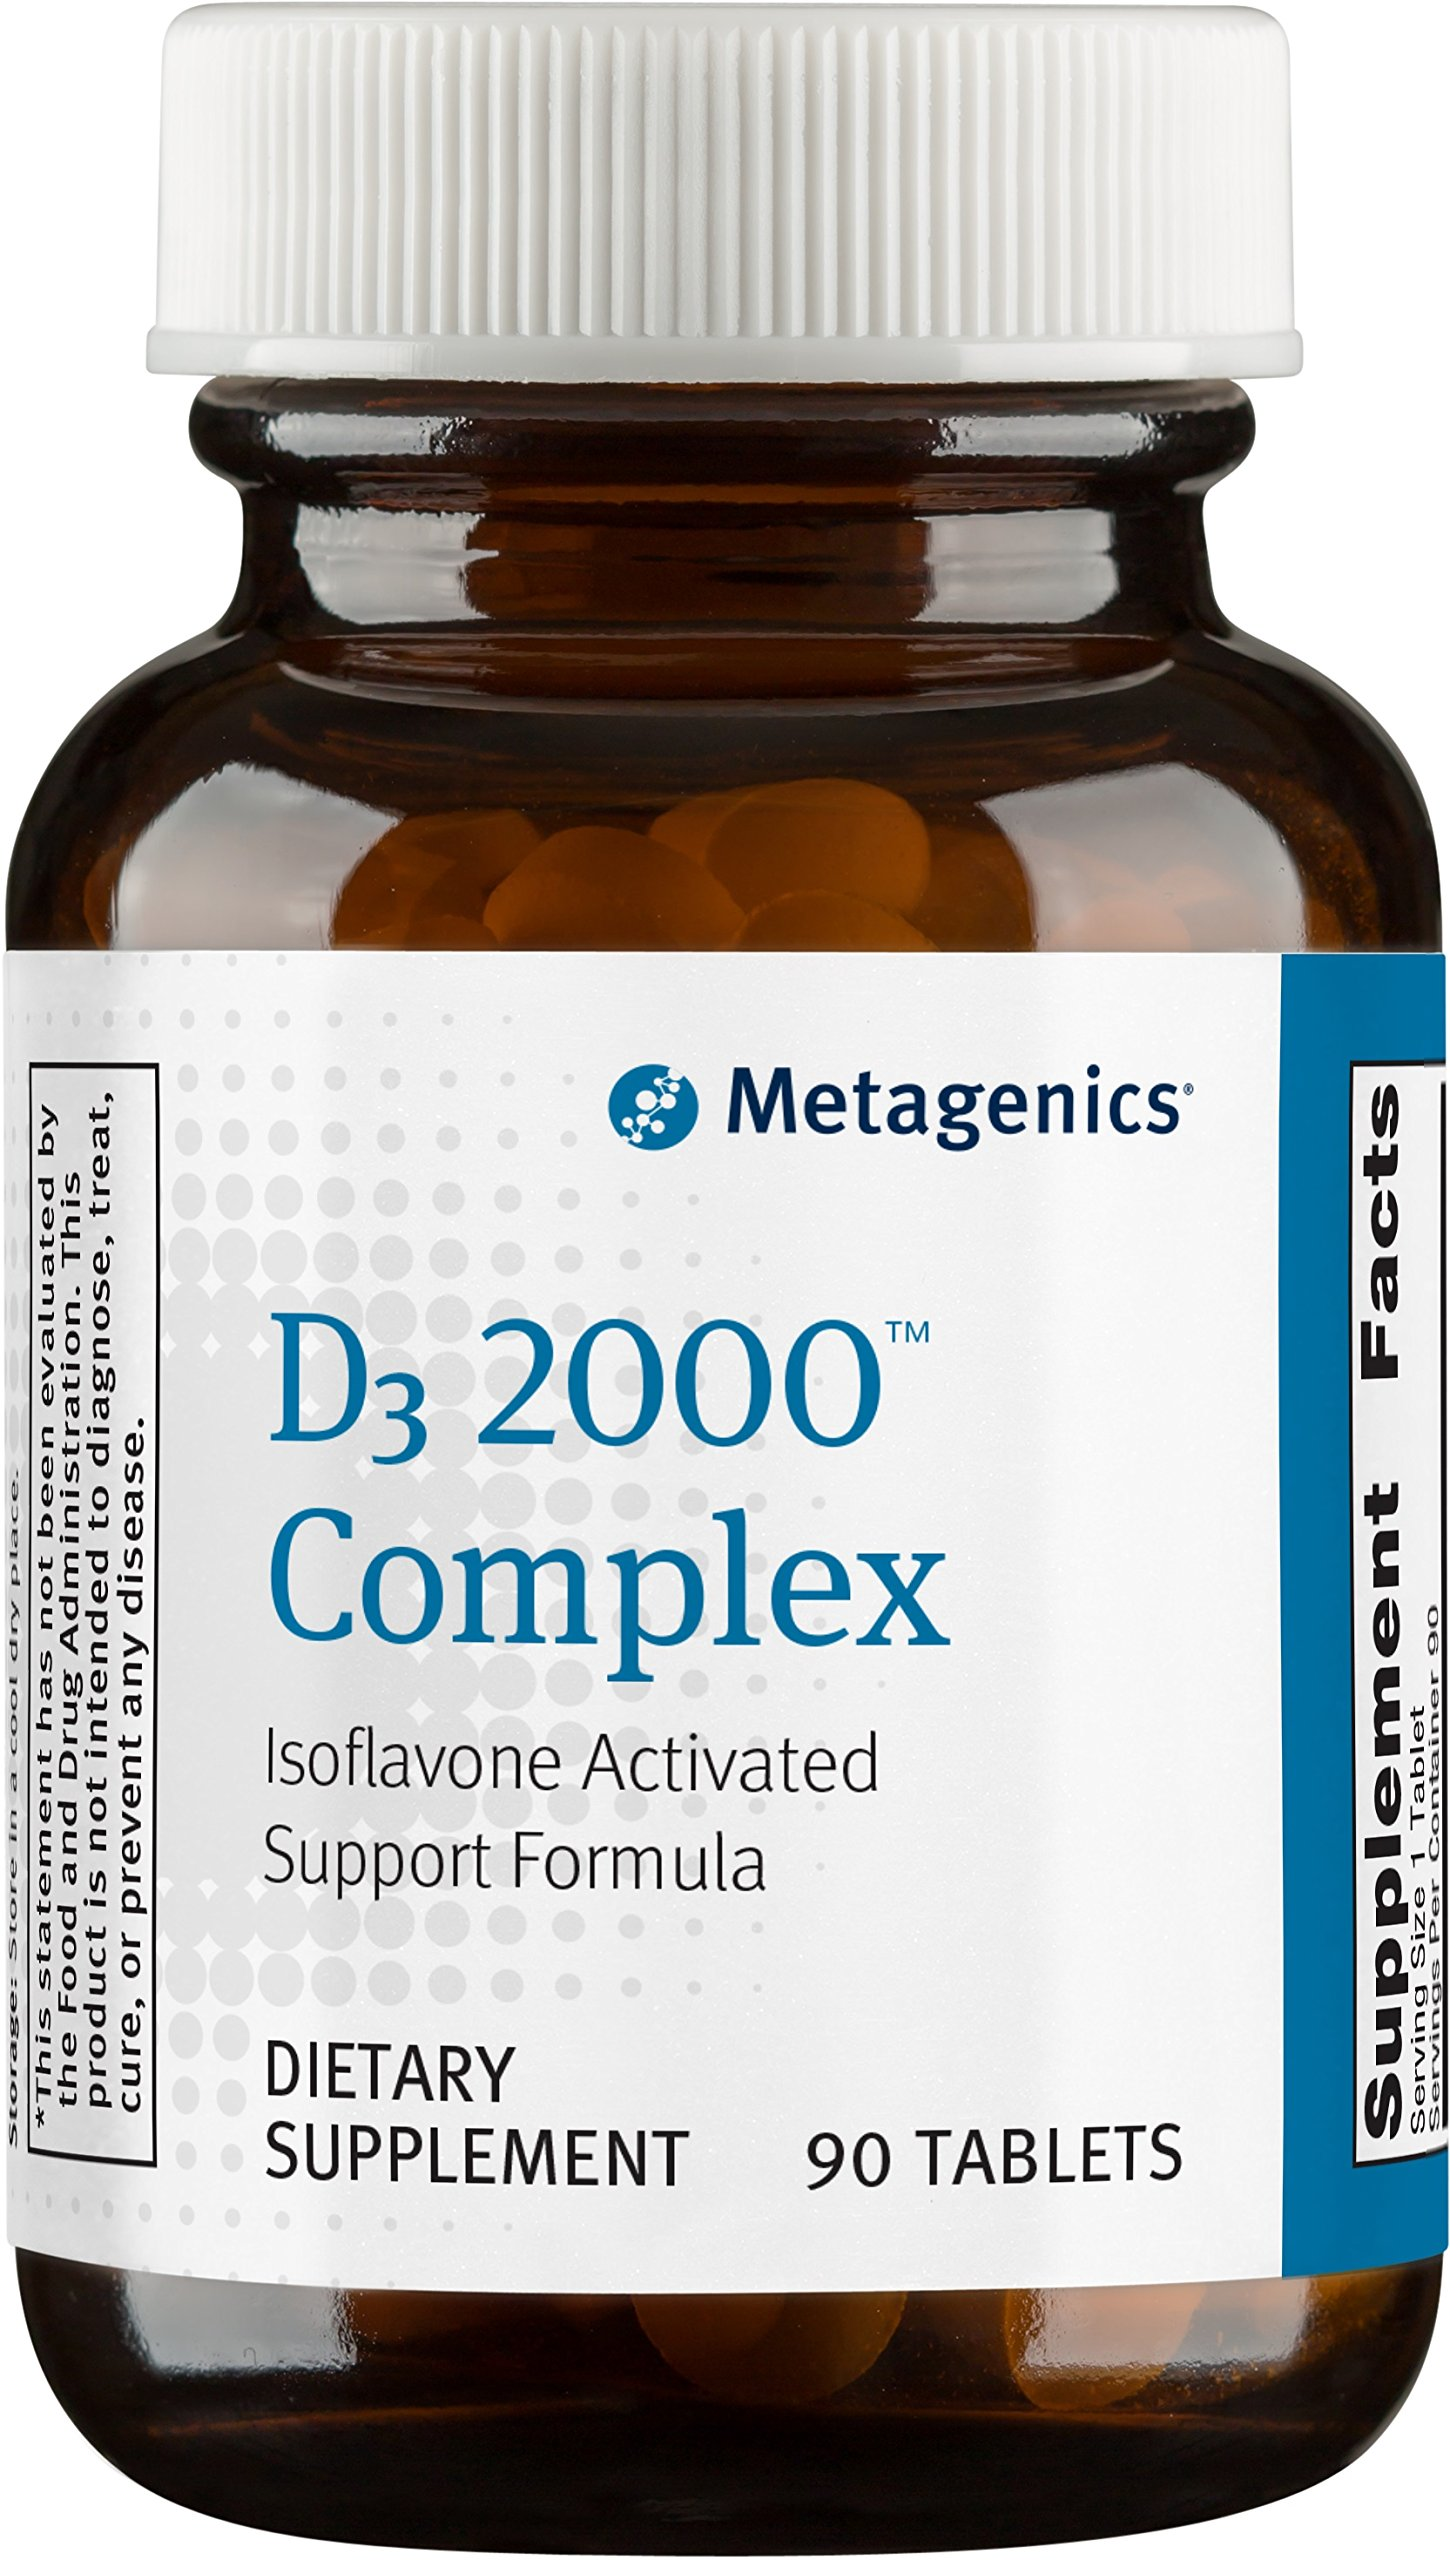 Metagenics - D3 2000 Complex, 90 Count